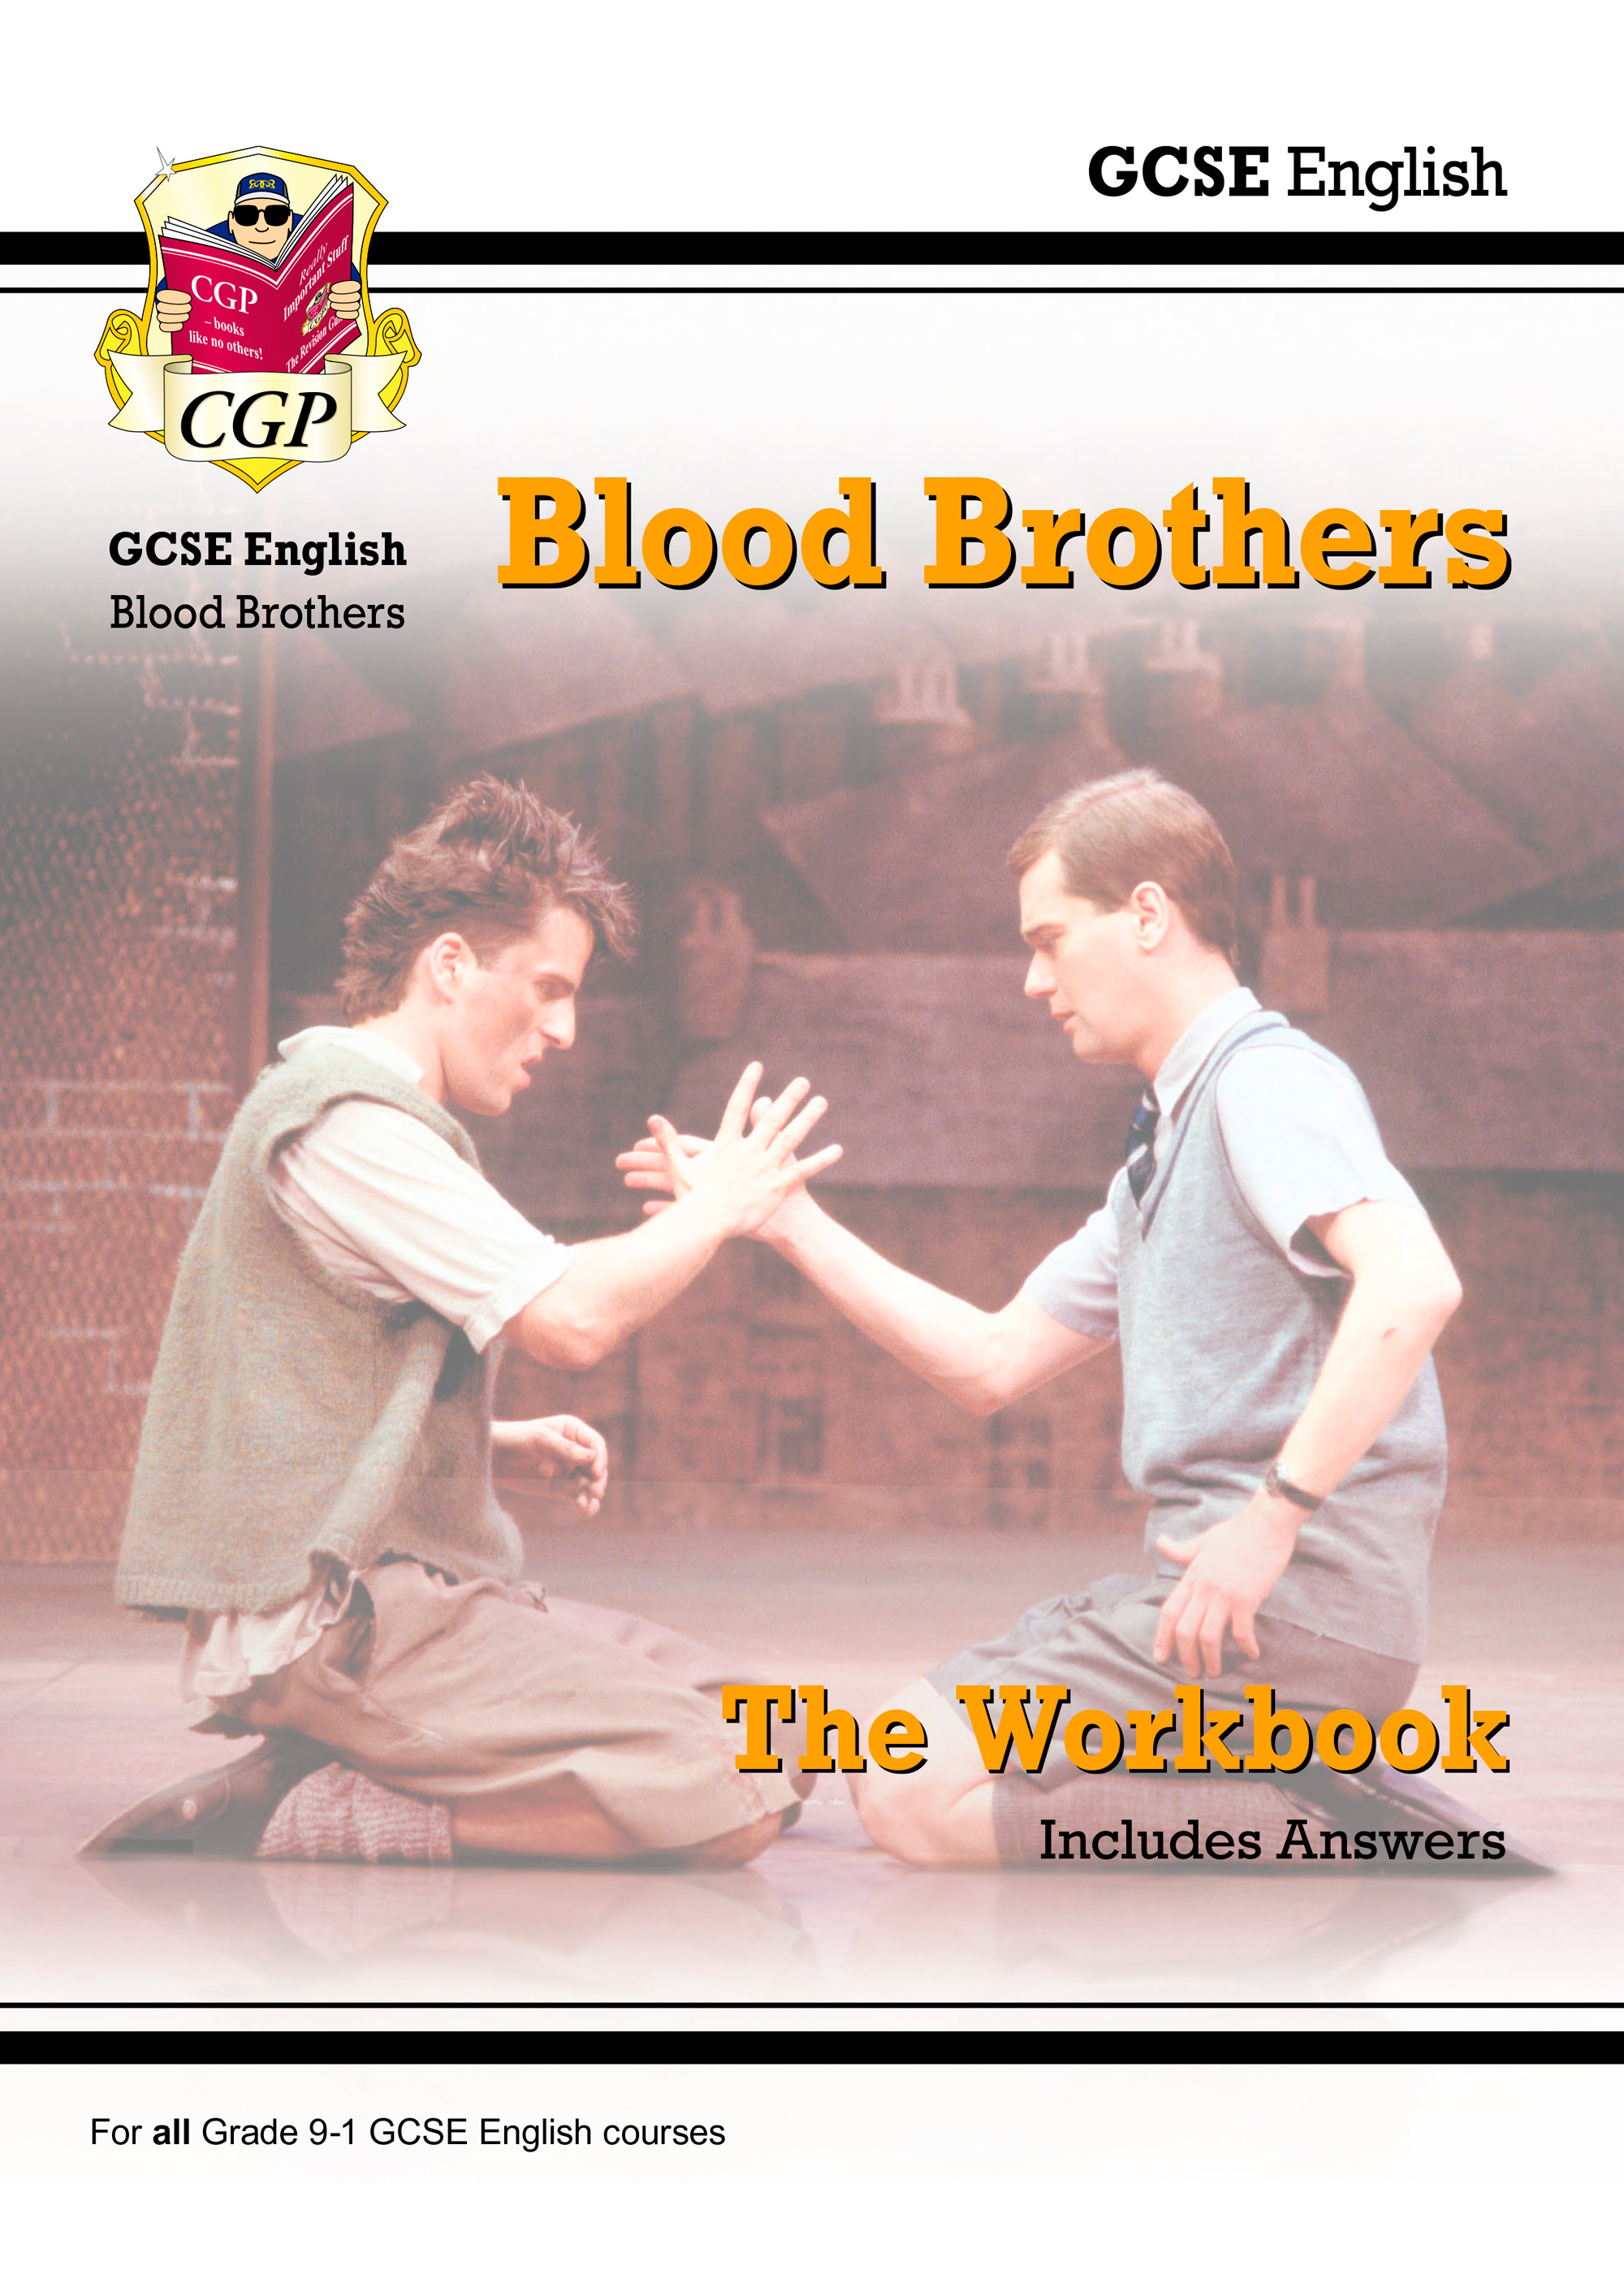 ETWBB41DK - New Grade 9-1 GCSE English - Blood Brothers Workbook (includes Answers)